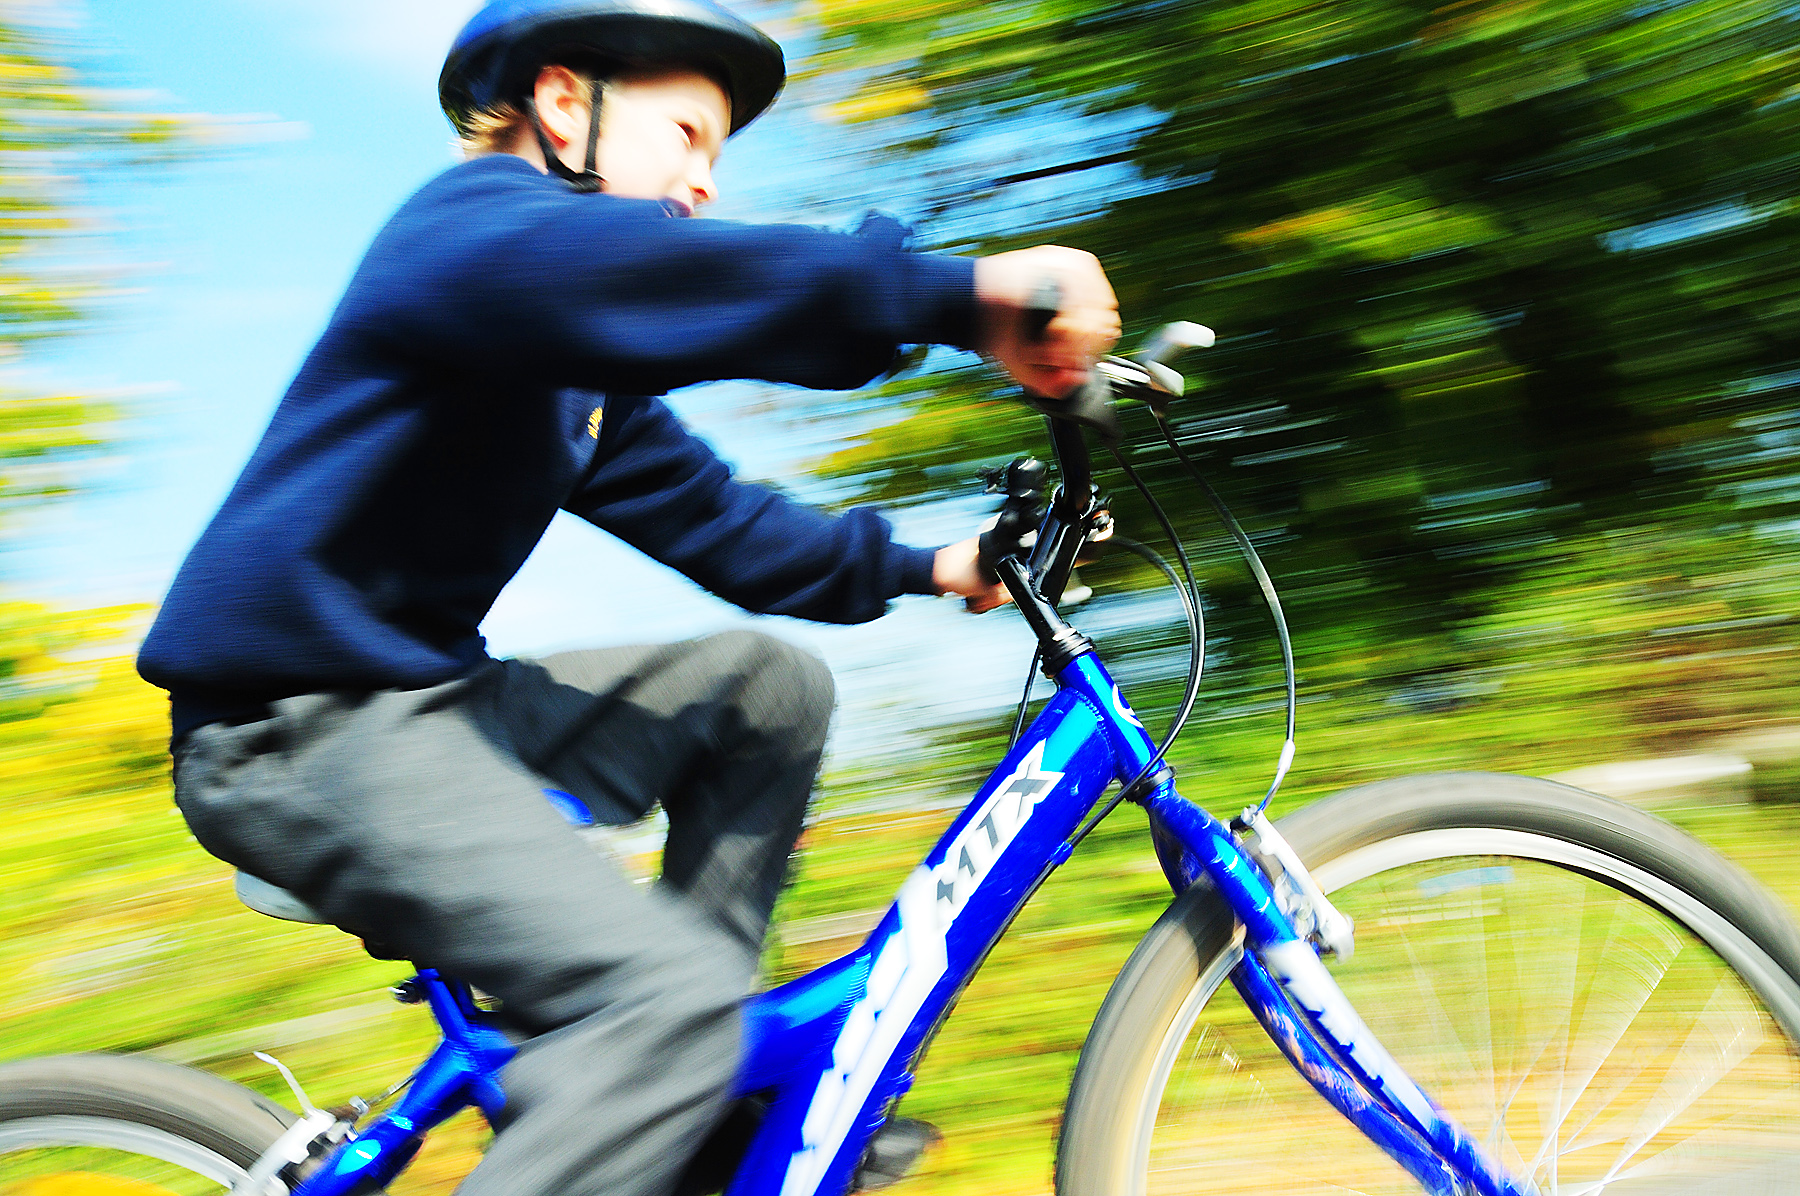 Irish Kids Banned From Cycling To Their School Due To